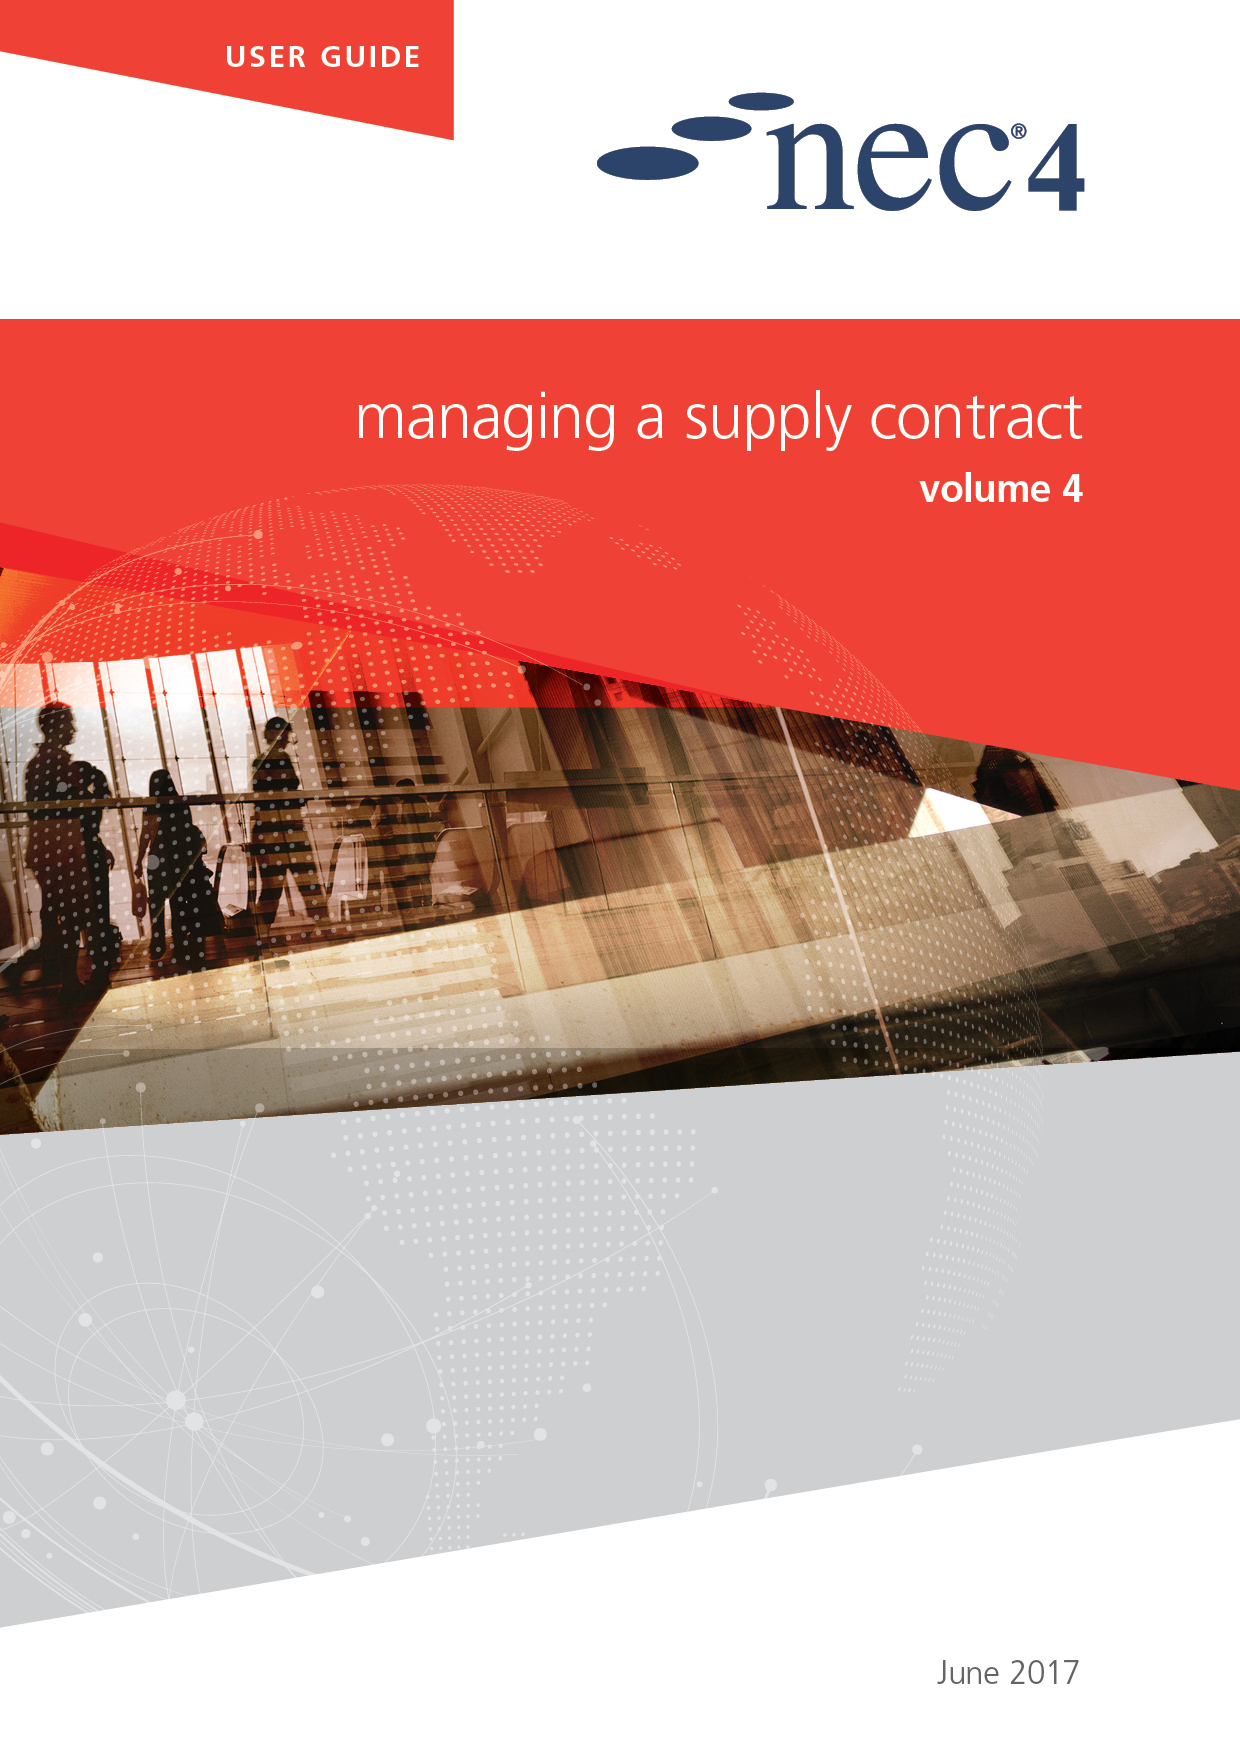 NEC4: Managing a Supply Contract